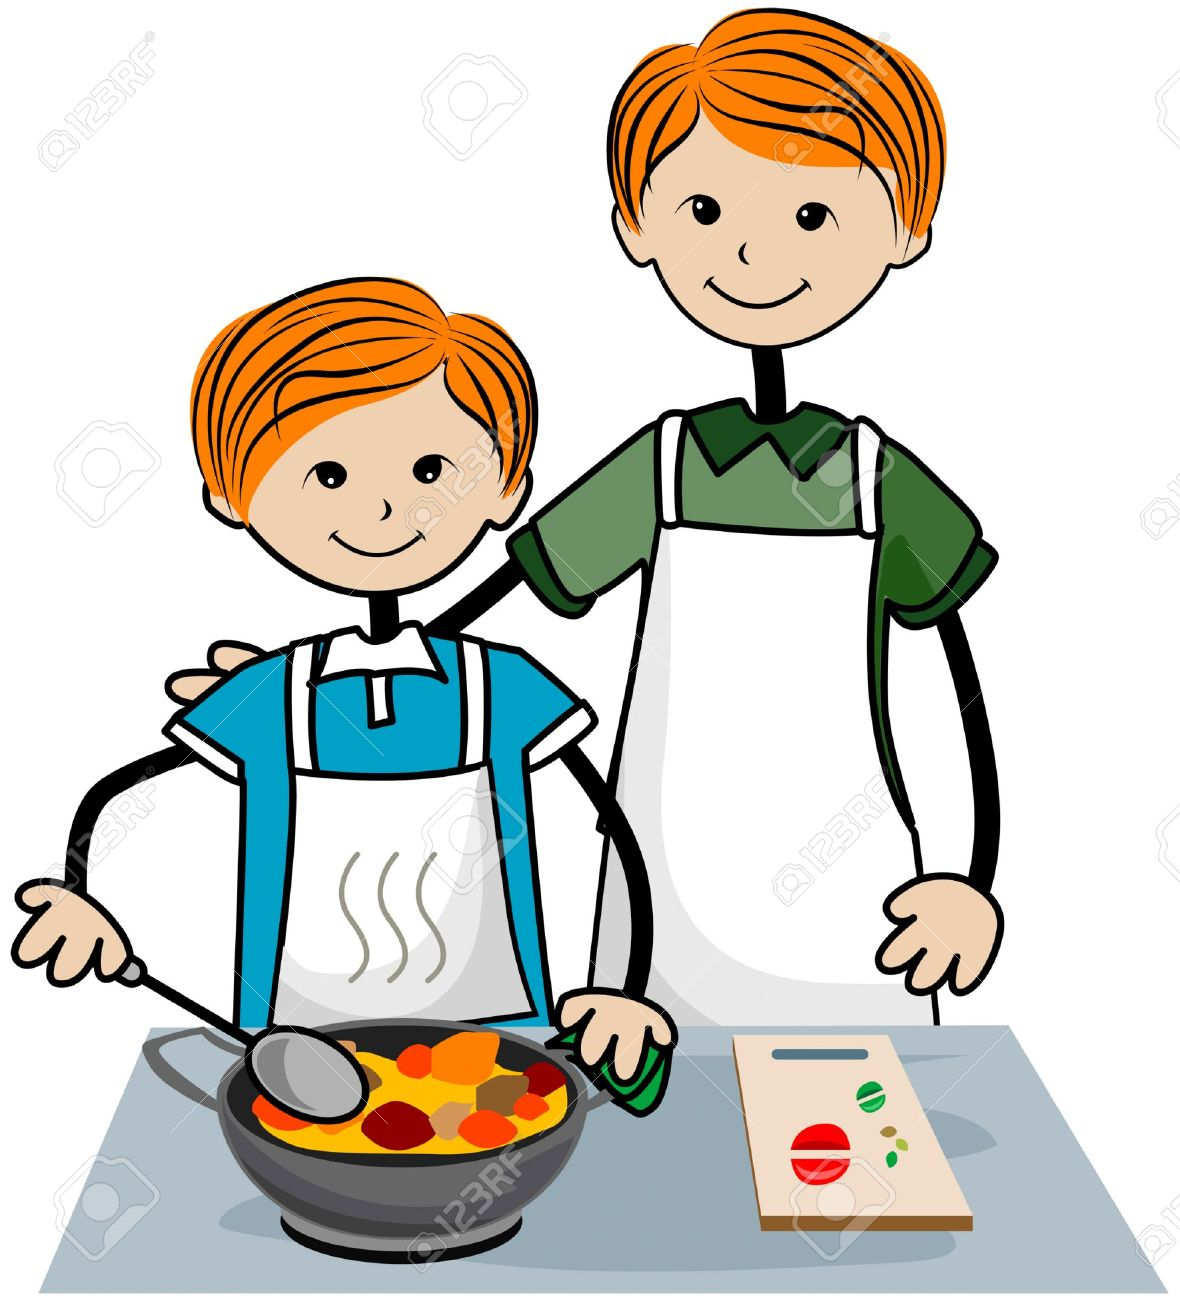 Clipart cooking images transparent Cooking Clipart Images Free | Free download best Cooking Clipart ... transparent